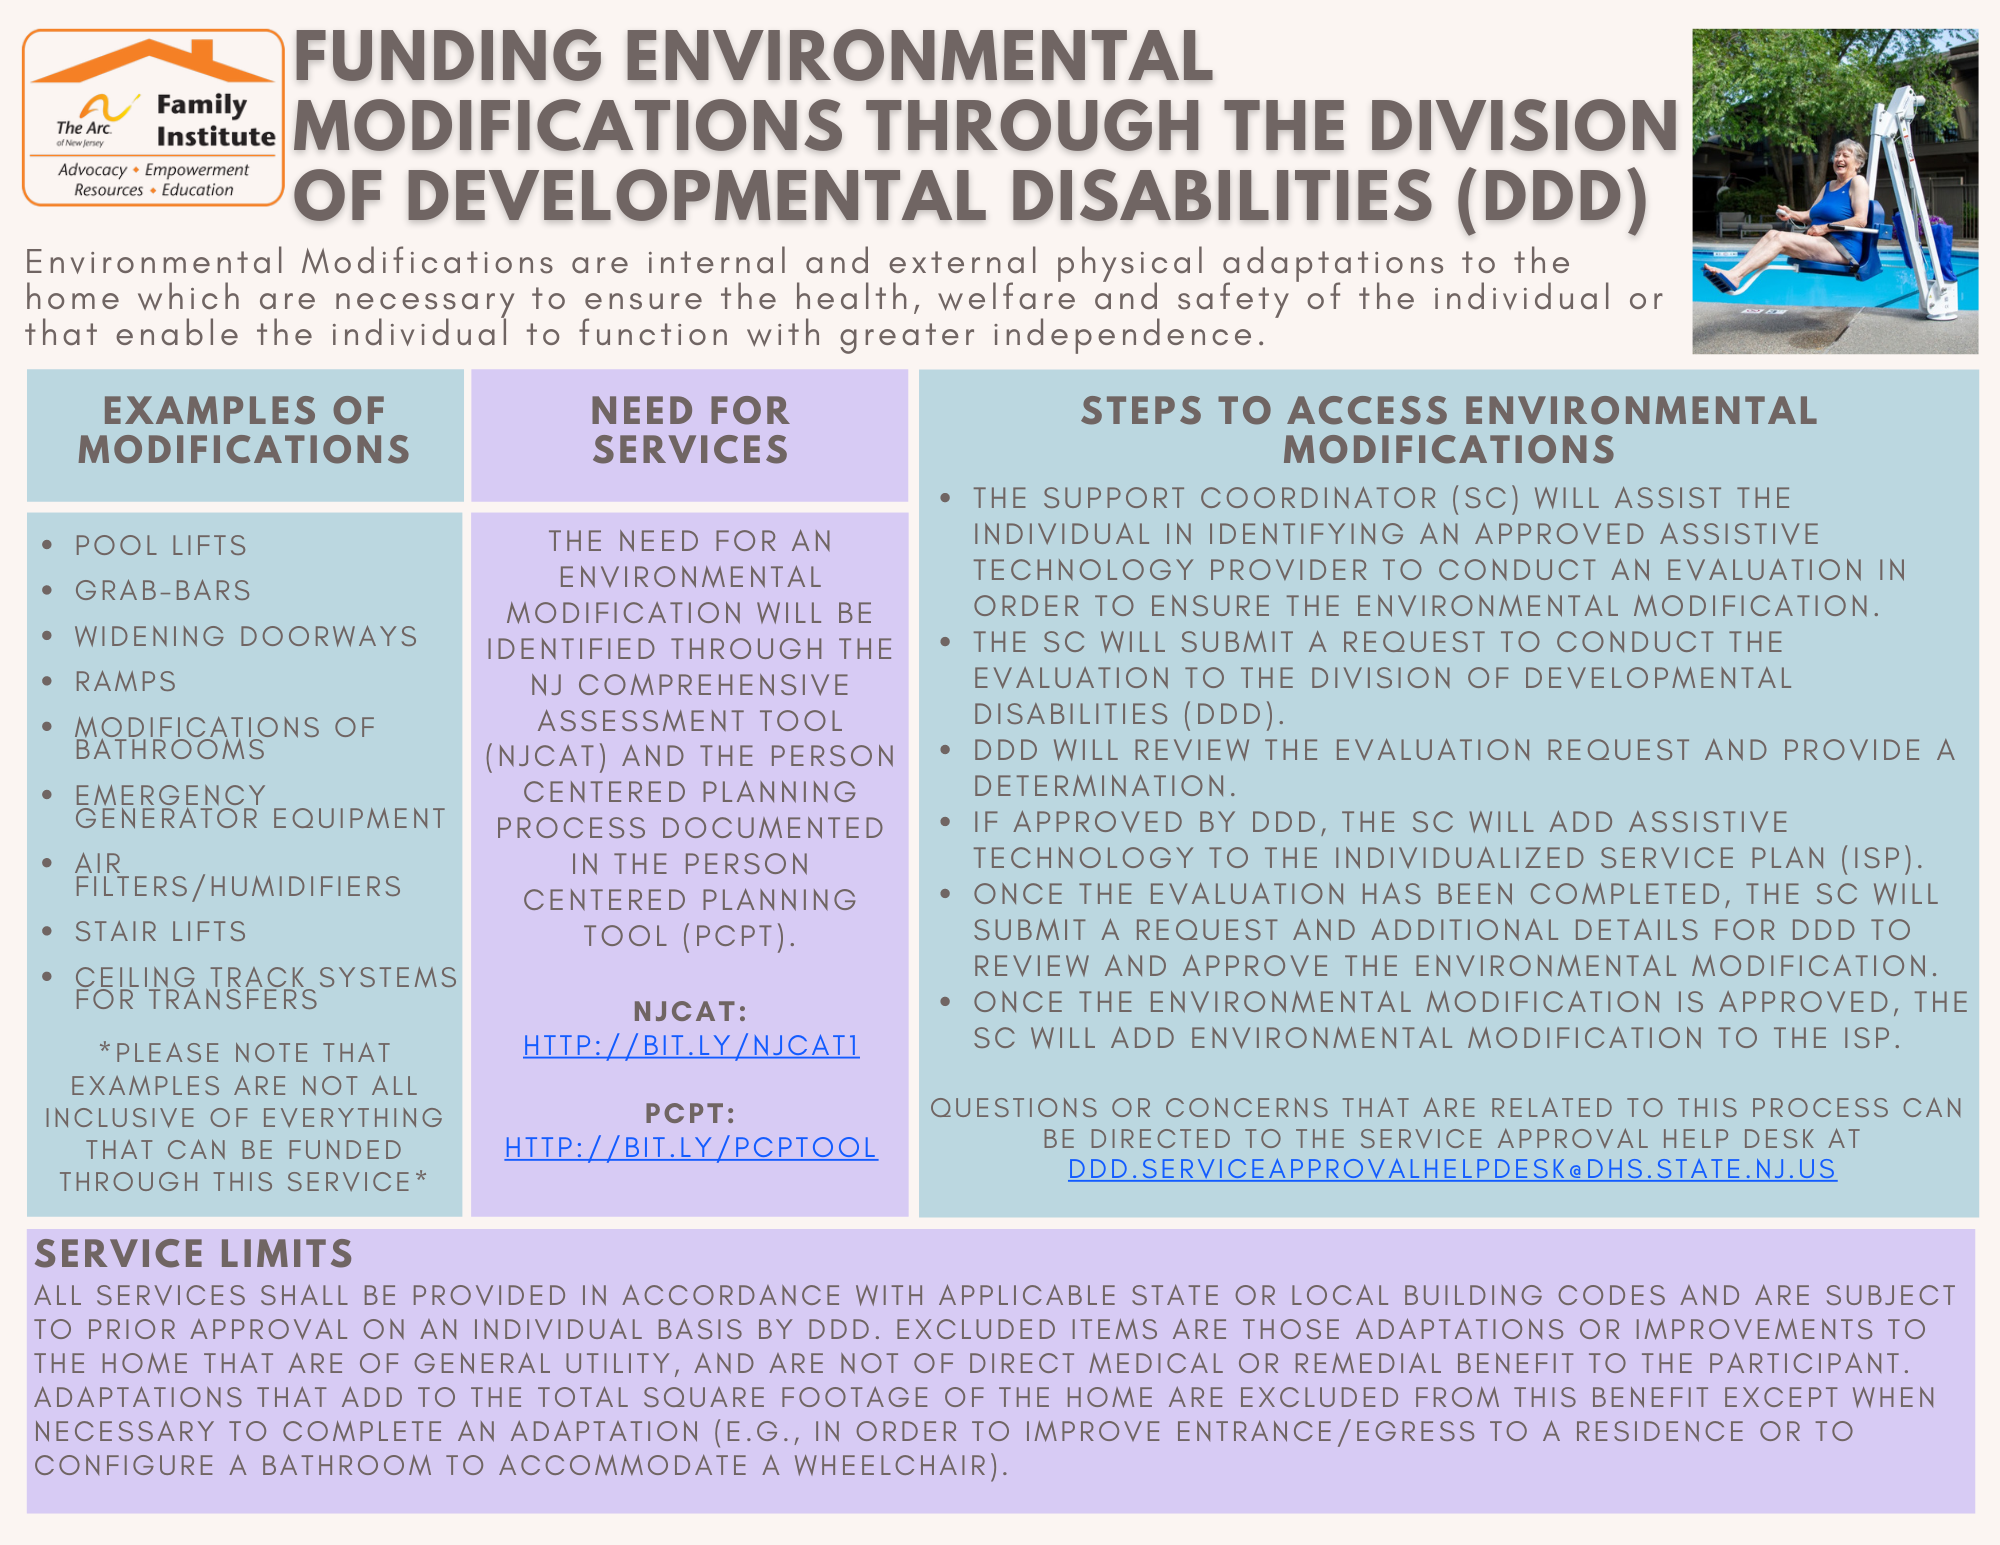 Funding Environmental Modifications Through The Division of Developmental Disabilities (DDD)